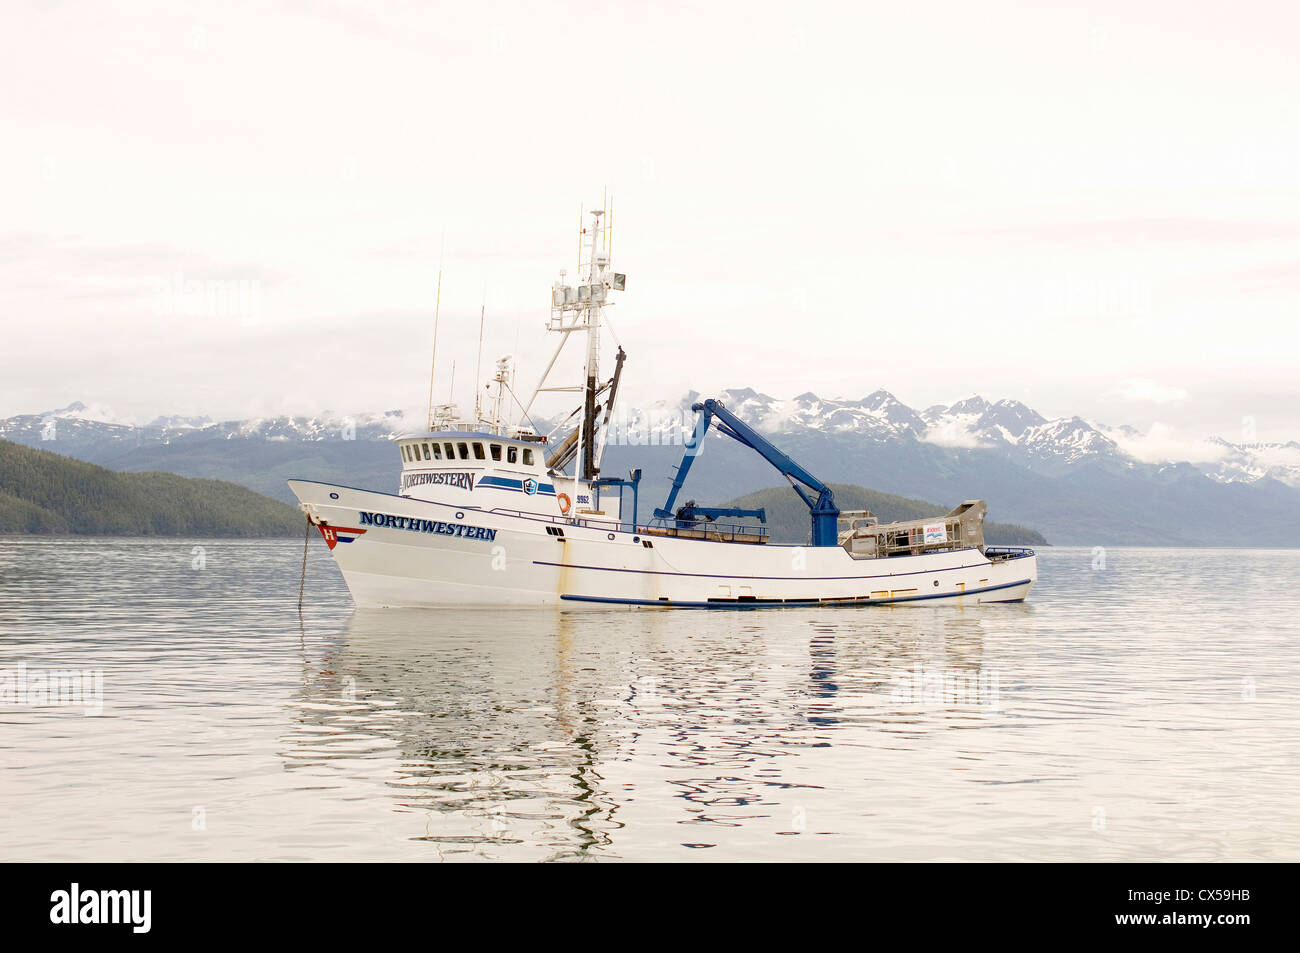 Northwestern Pictures Deadliest Catch Discovery Pictures of the northwestern crab boat